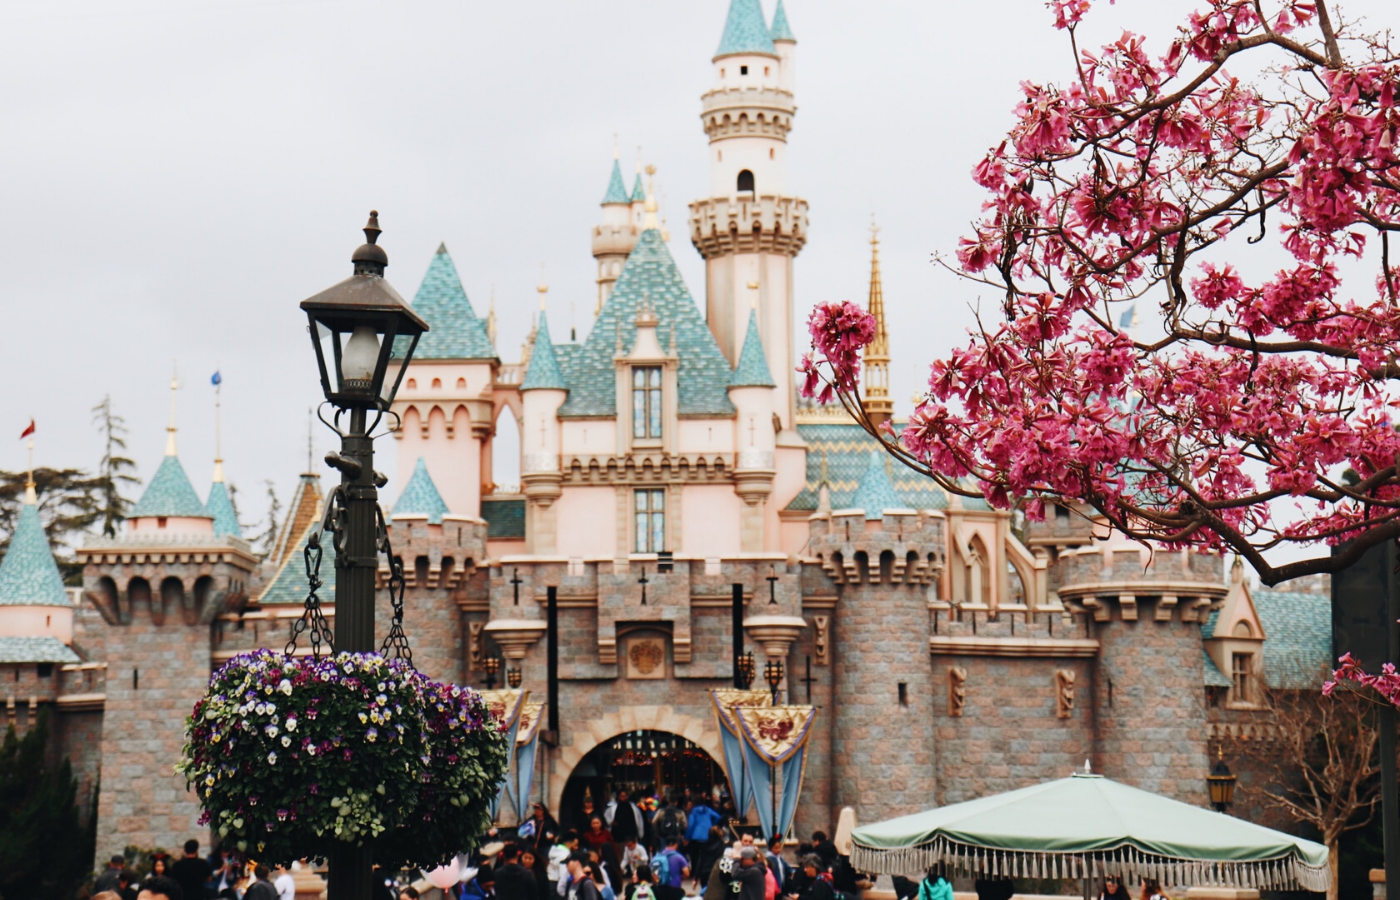 disneyland castle | things to do online